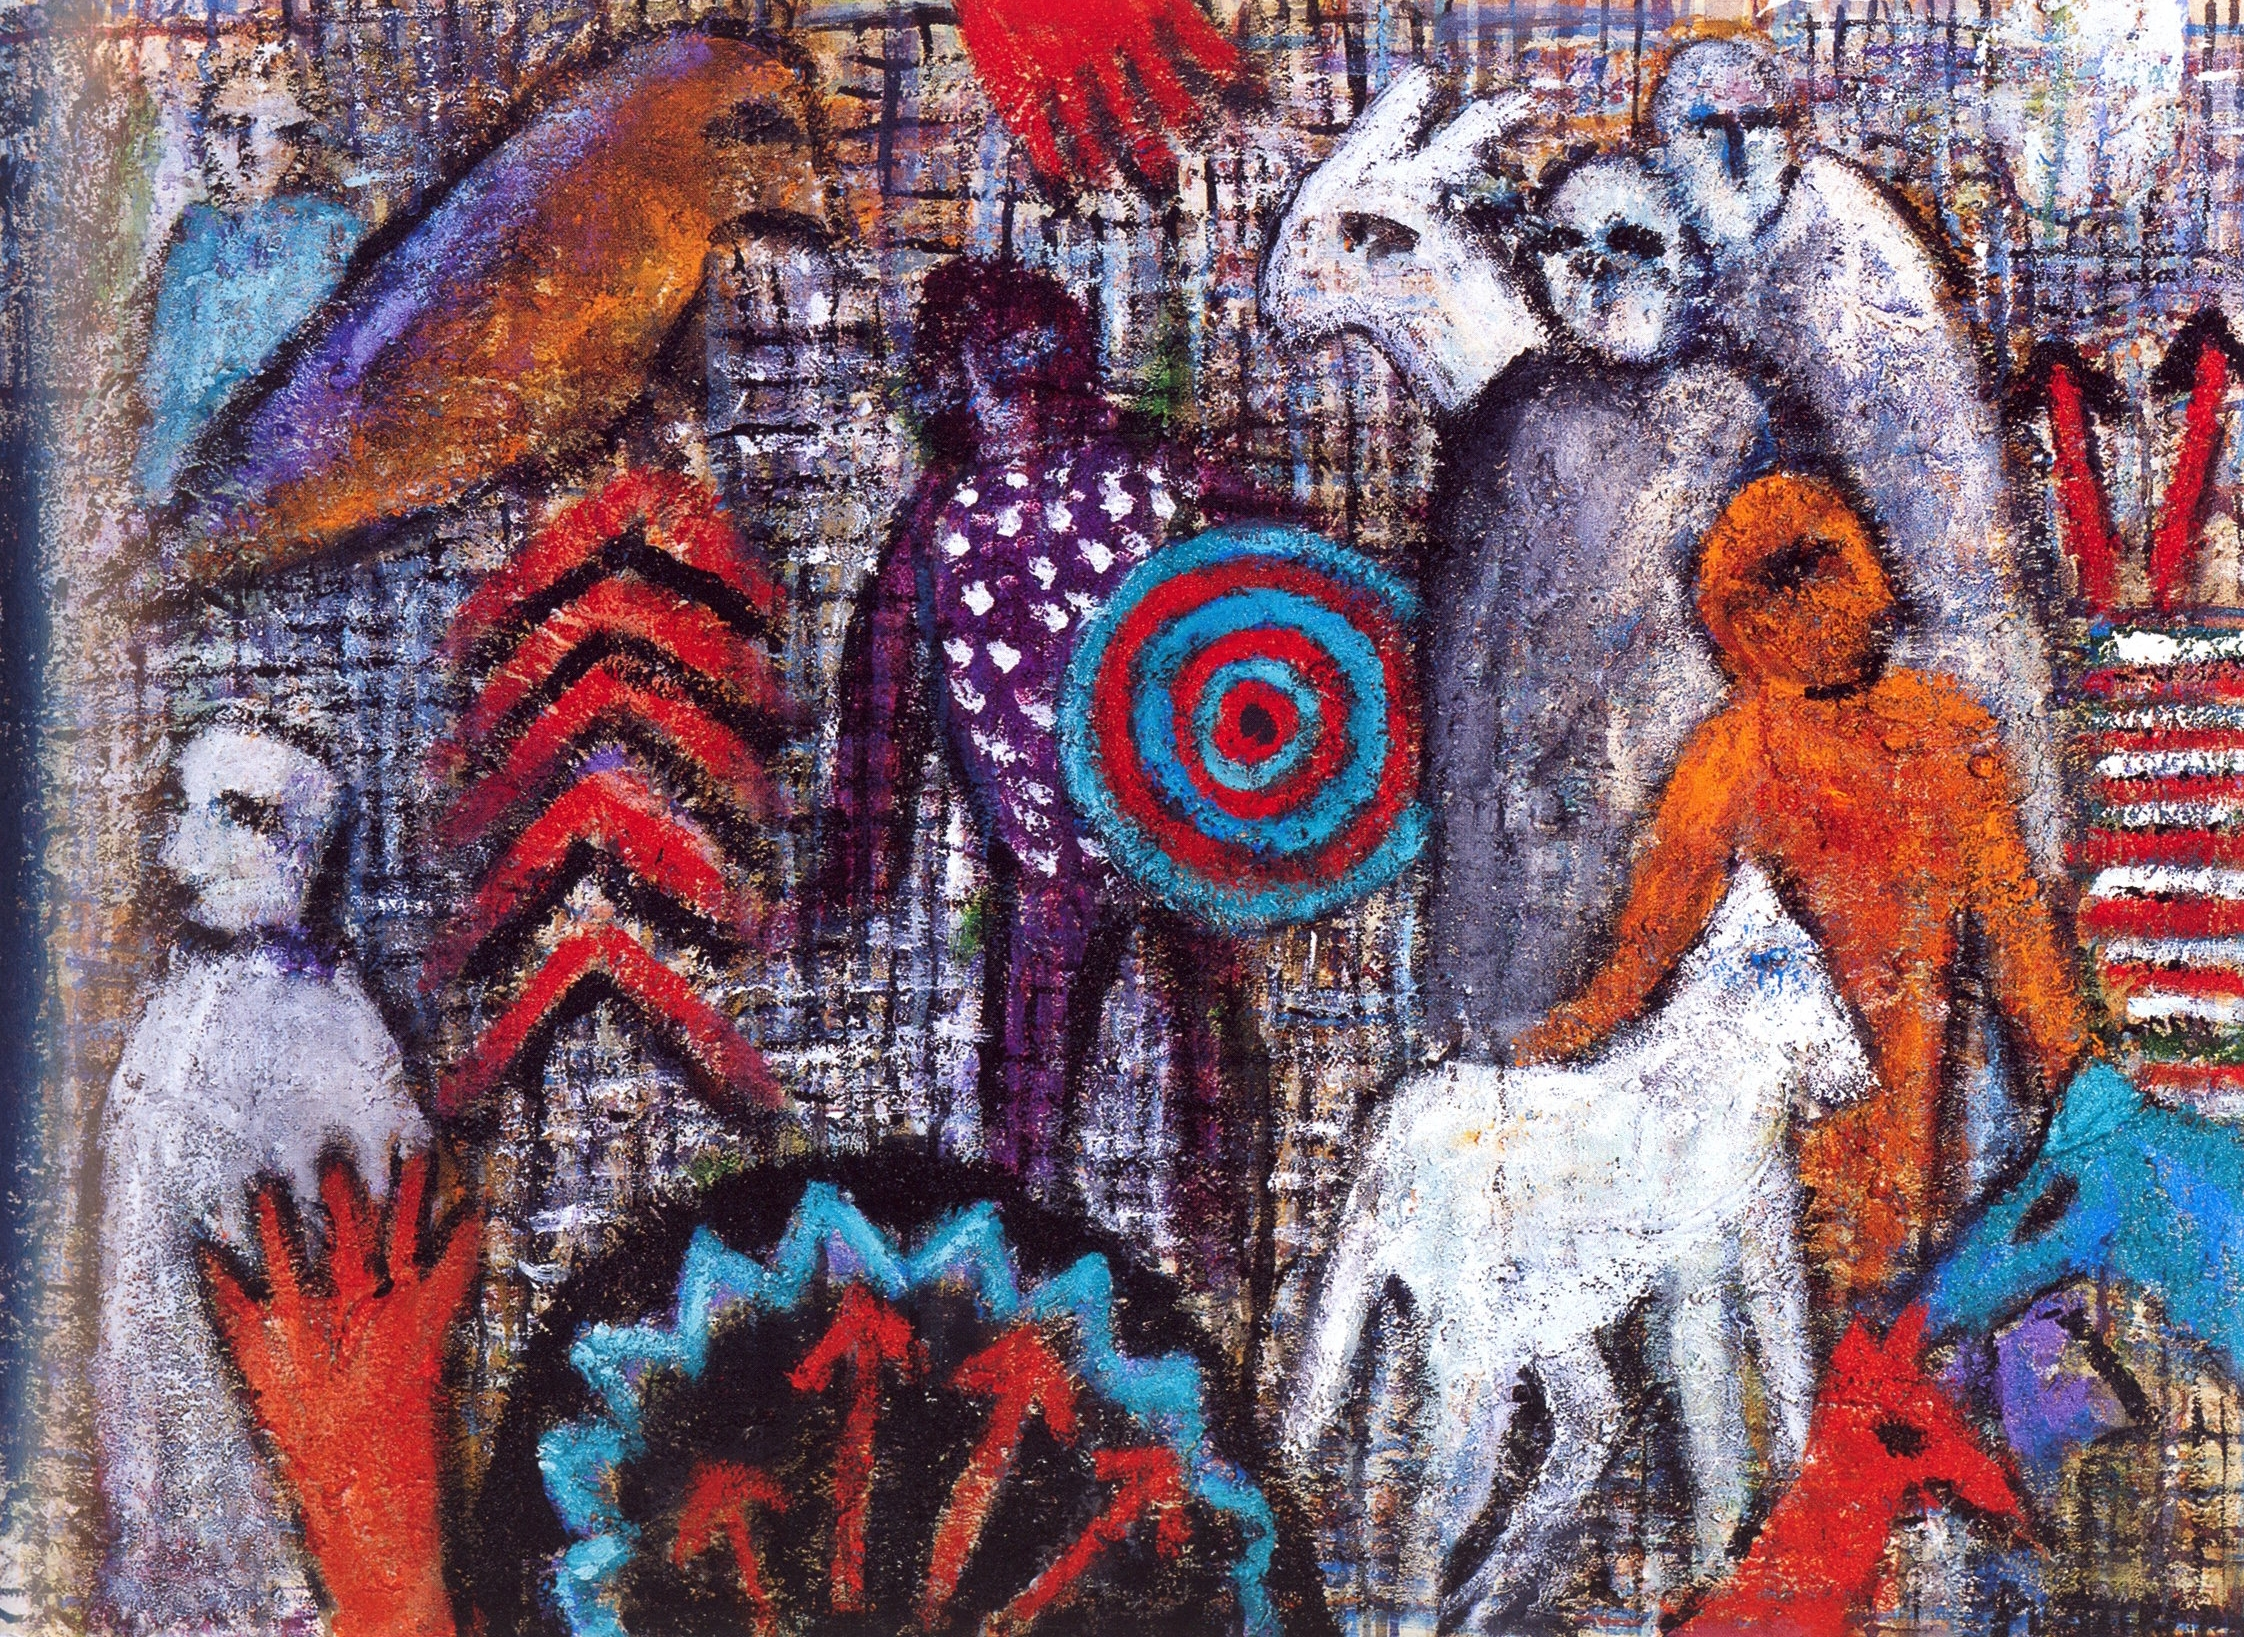 Numinous Legends XII   Acrylic, sand on canvas, 28'' x 38'', 2004